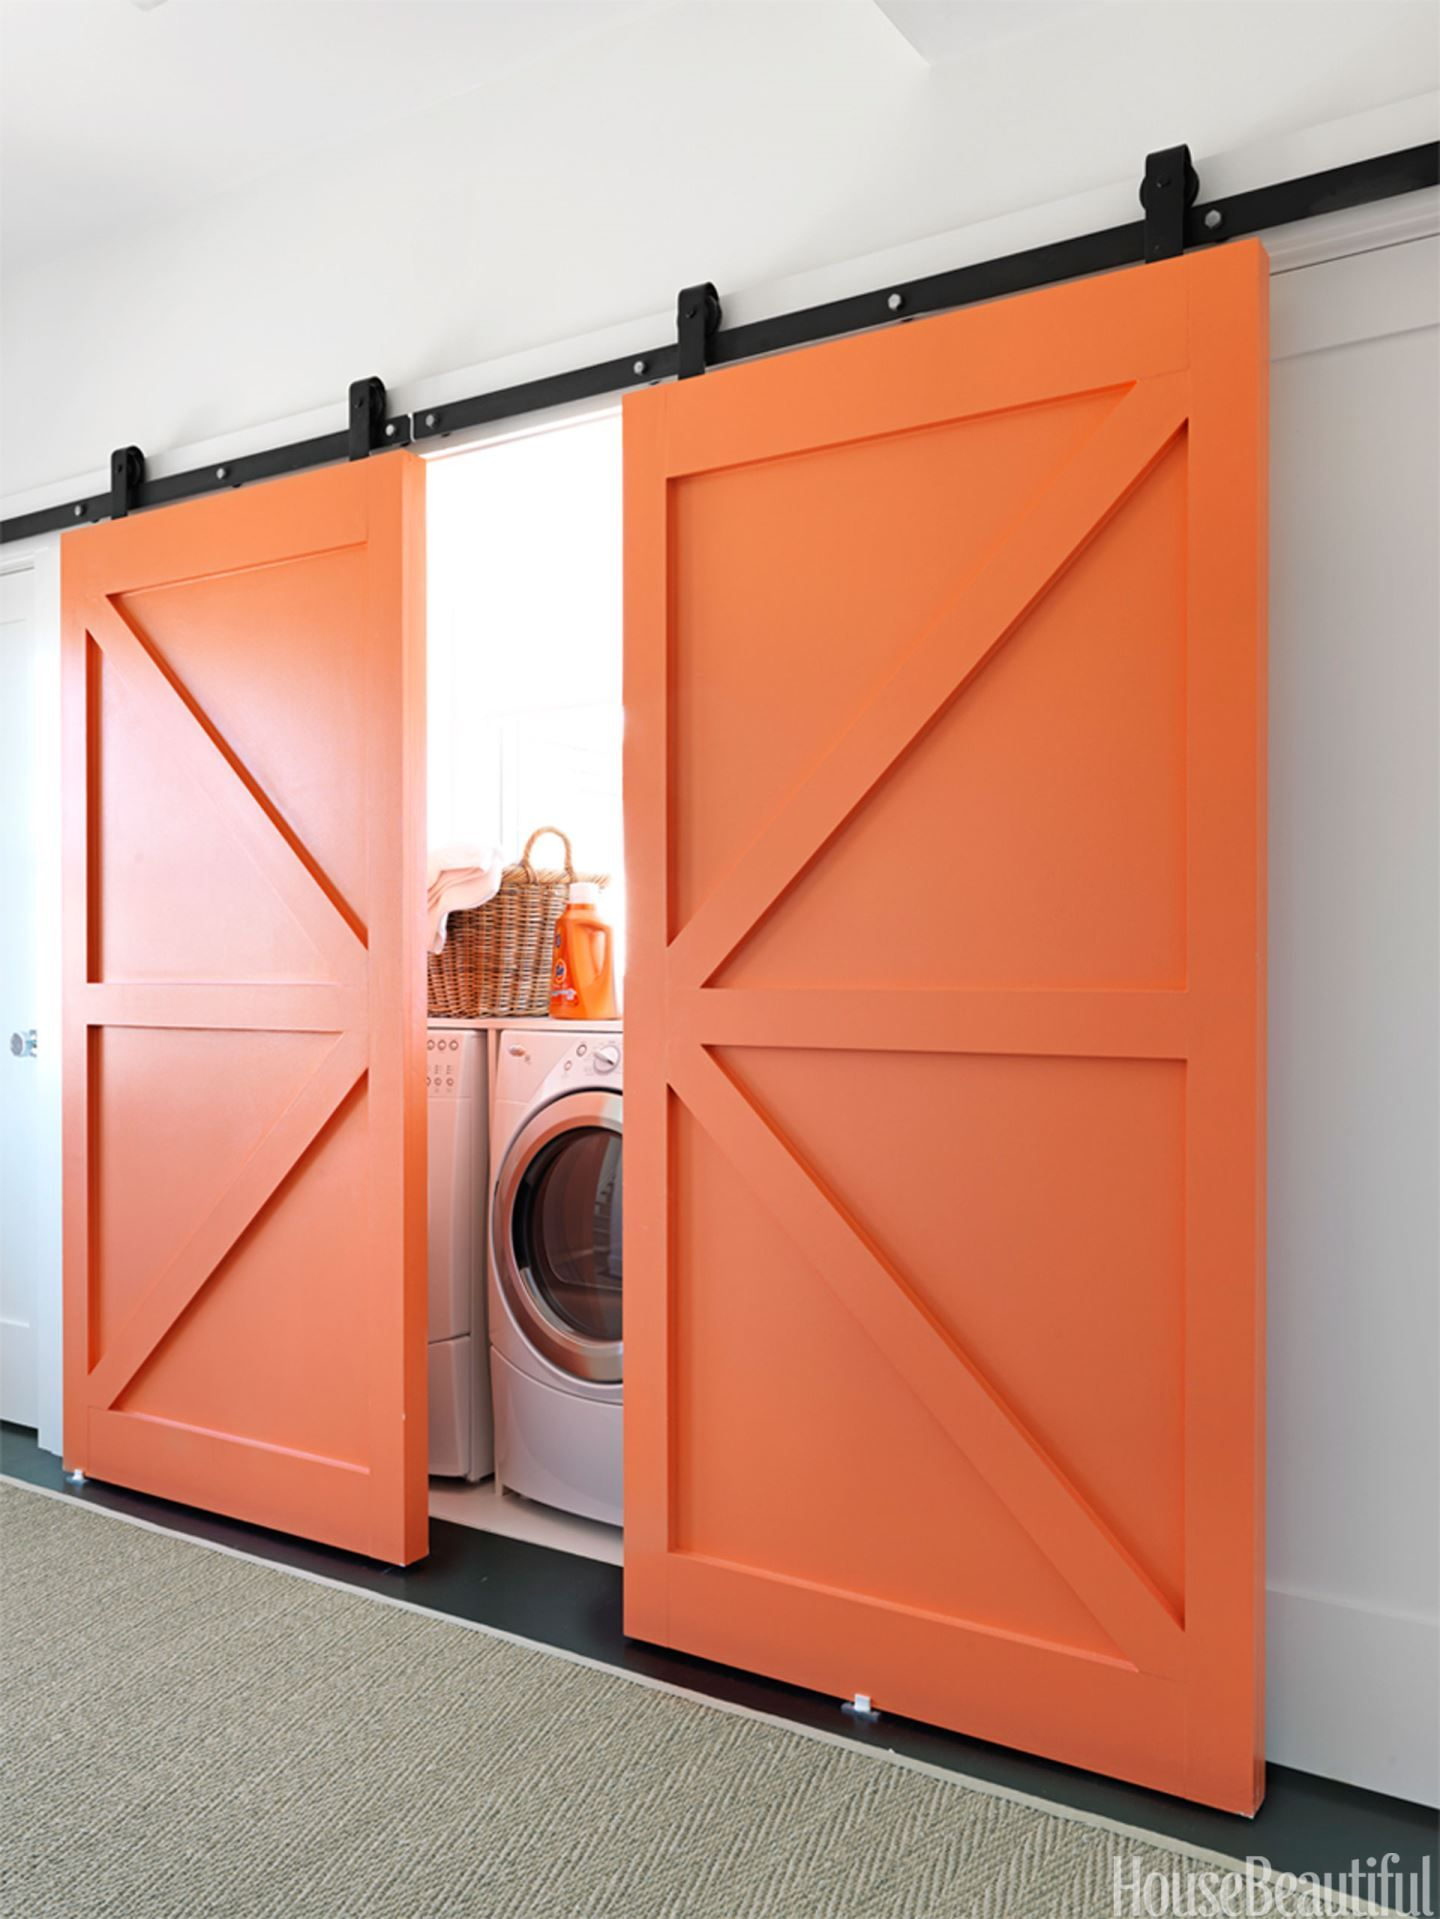 Terrible Color, But Love The Idea Of A Simple Laundry